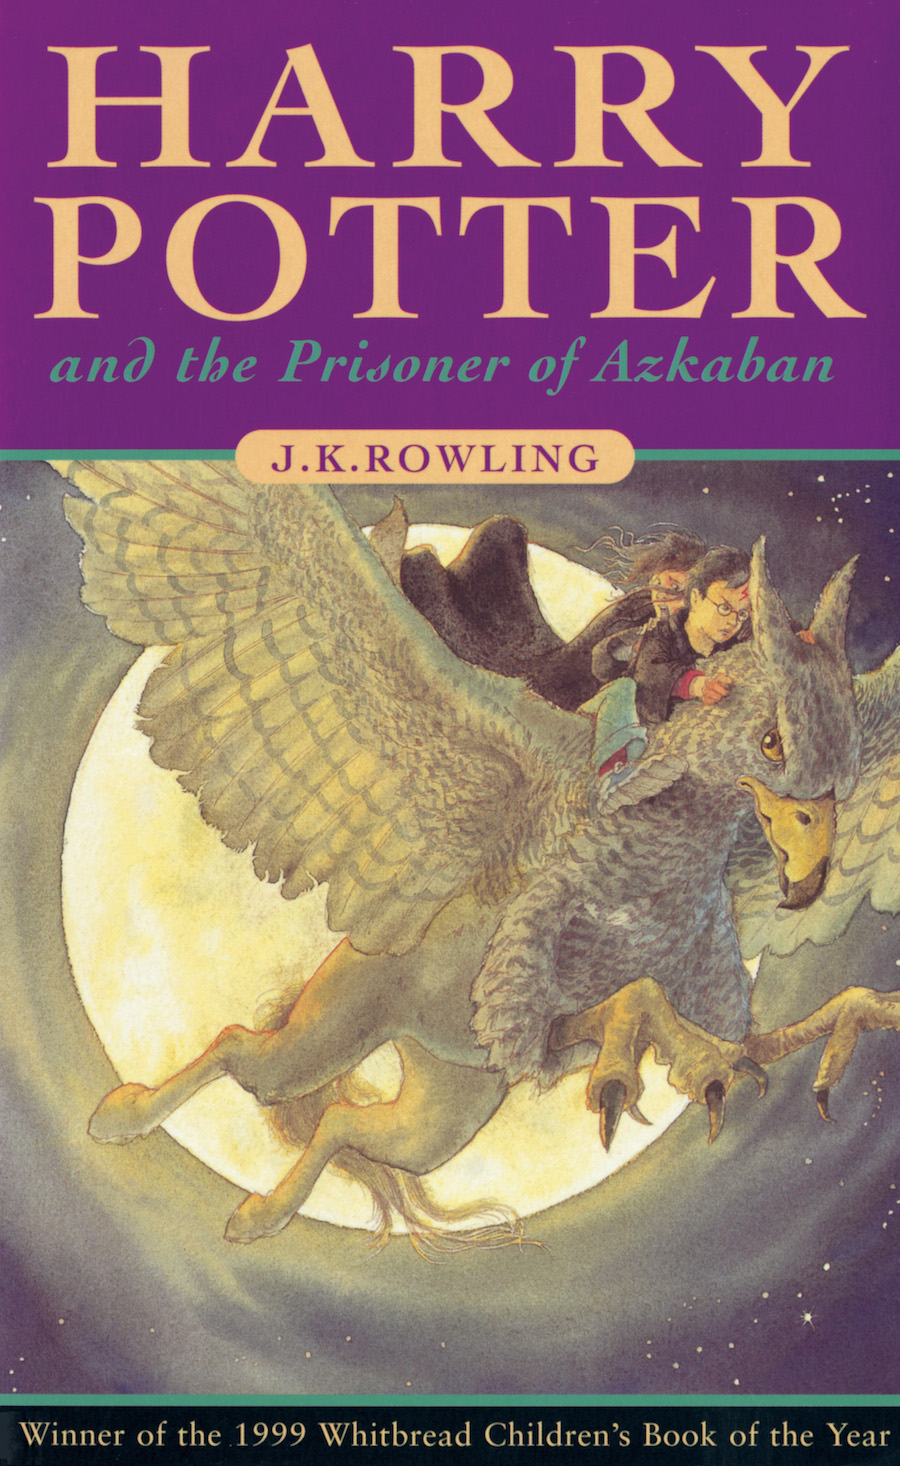 harry potter and the prisoner of azkaban | jk rowling | in literature